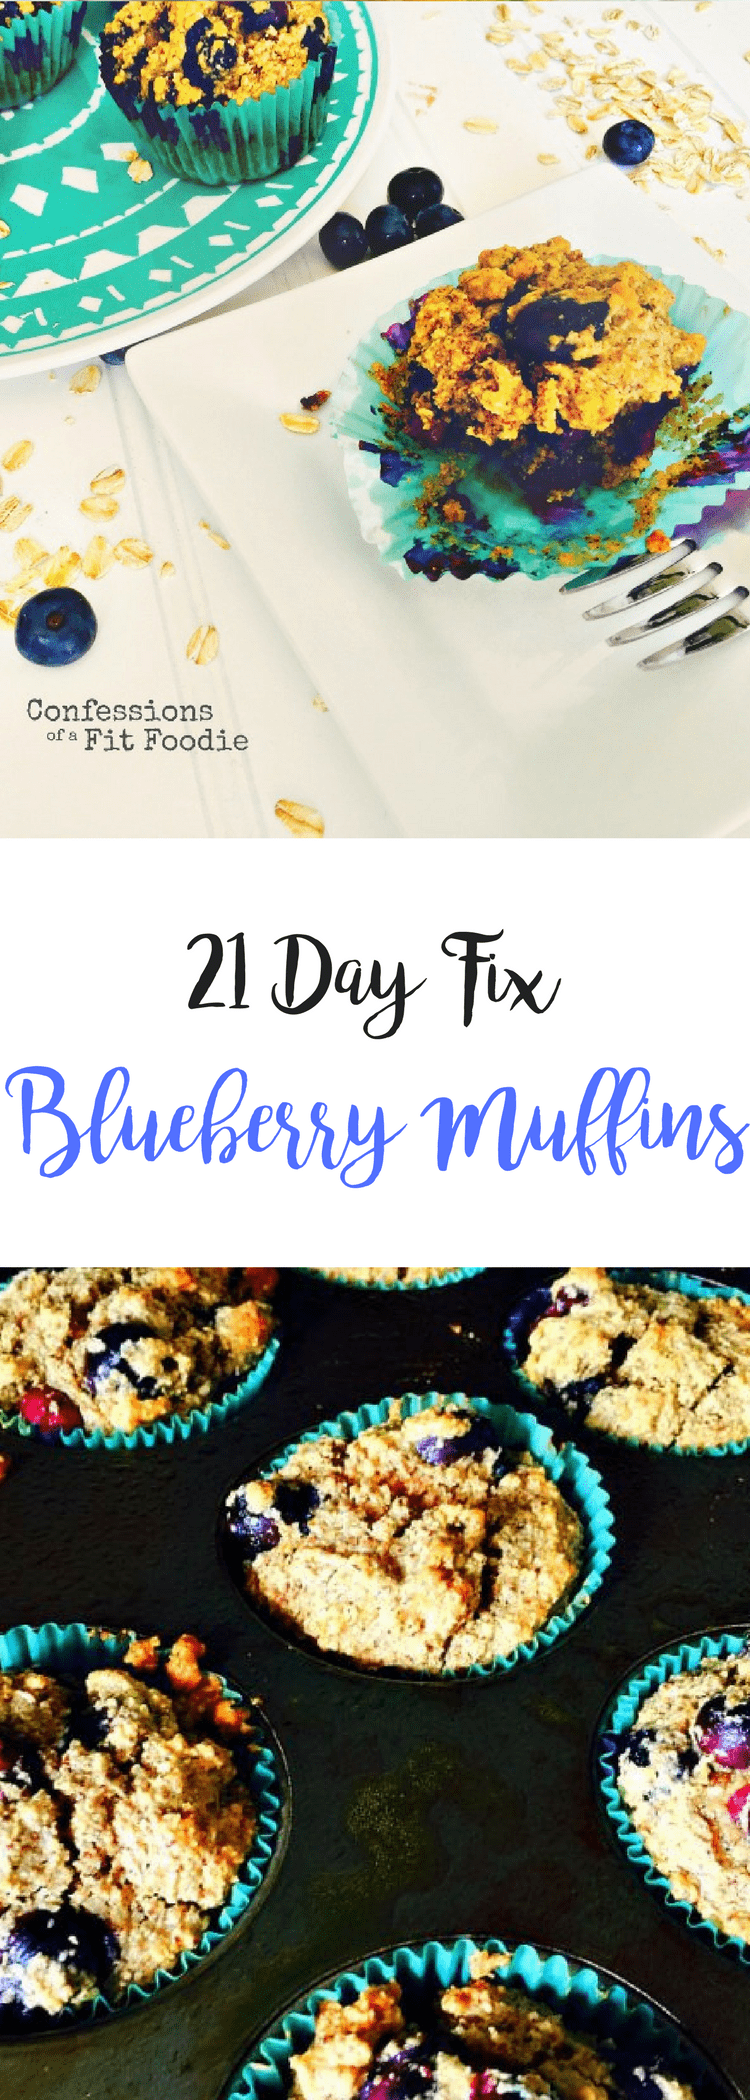 21 Day Fix Blueberry Muffins {Gluten Free, Dairy Free} | Confessions of a Fit Foodie